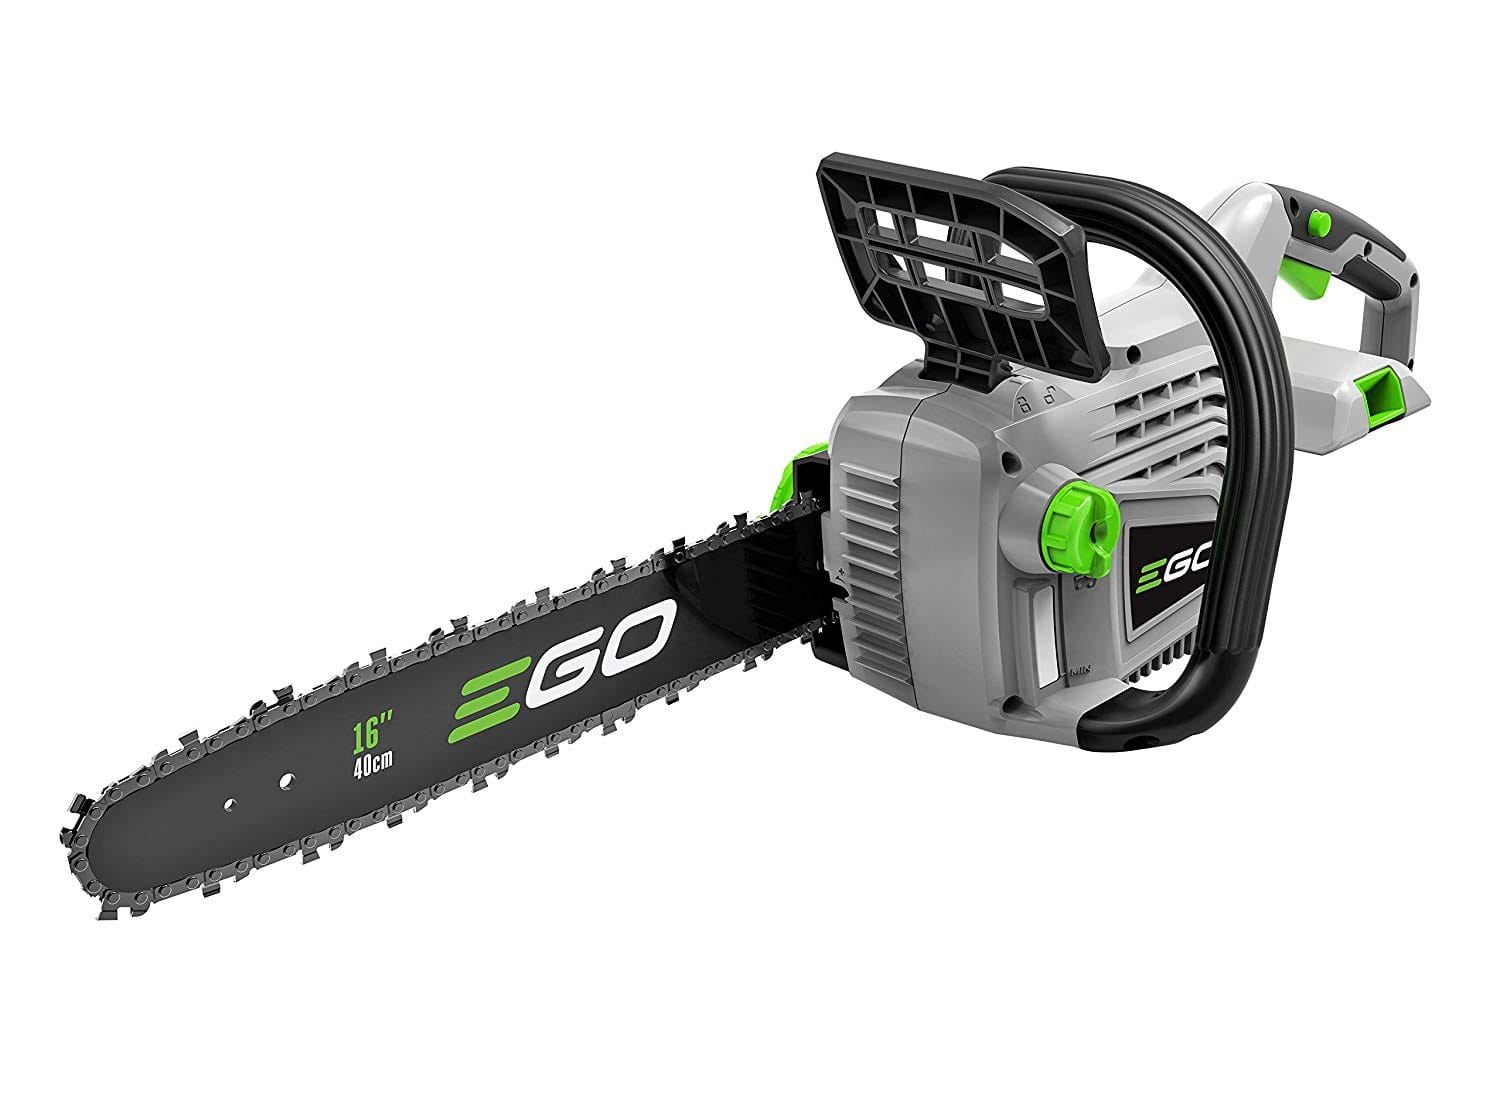 EGO Power+ CS1600 16-Inch 56V Lithium-ion Cordless Chainsaw - Battery and Charger Not Included $169.00 Free Shipping